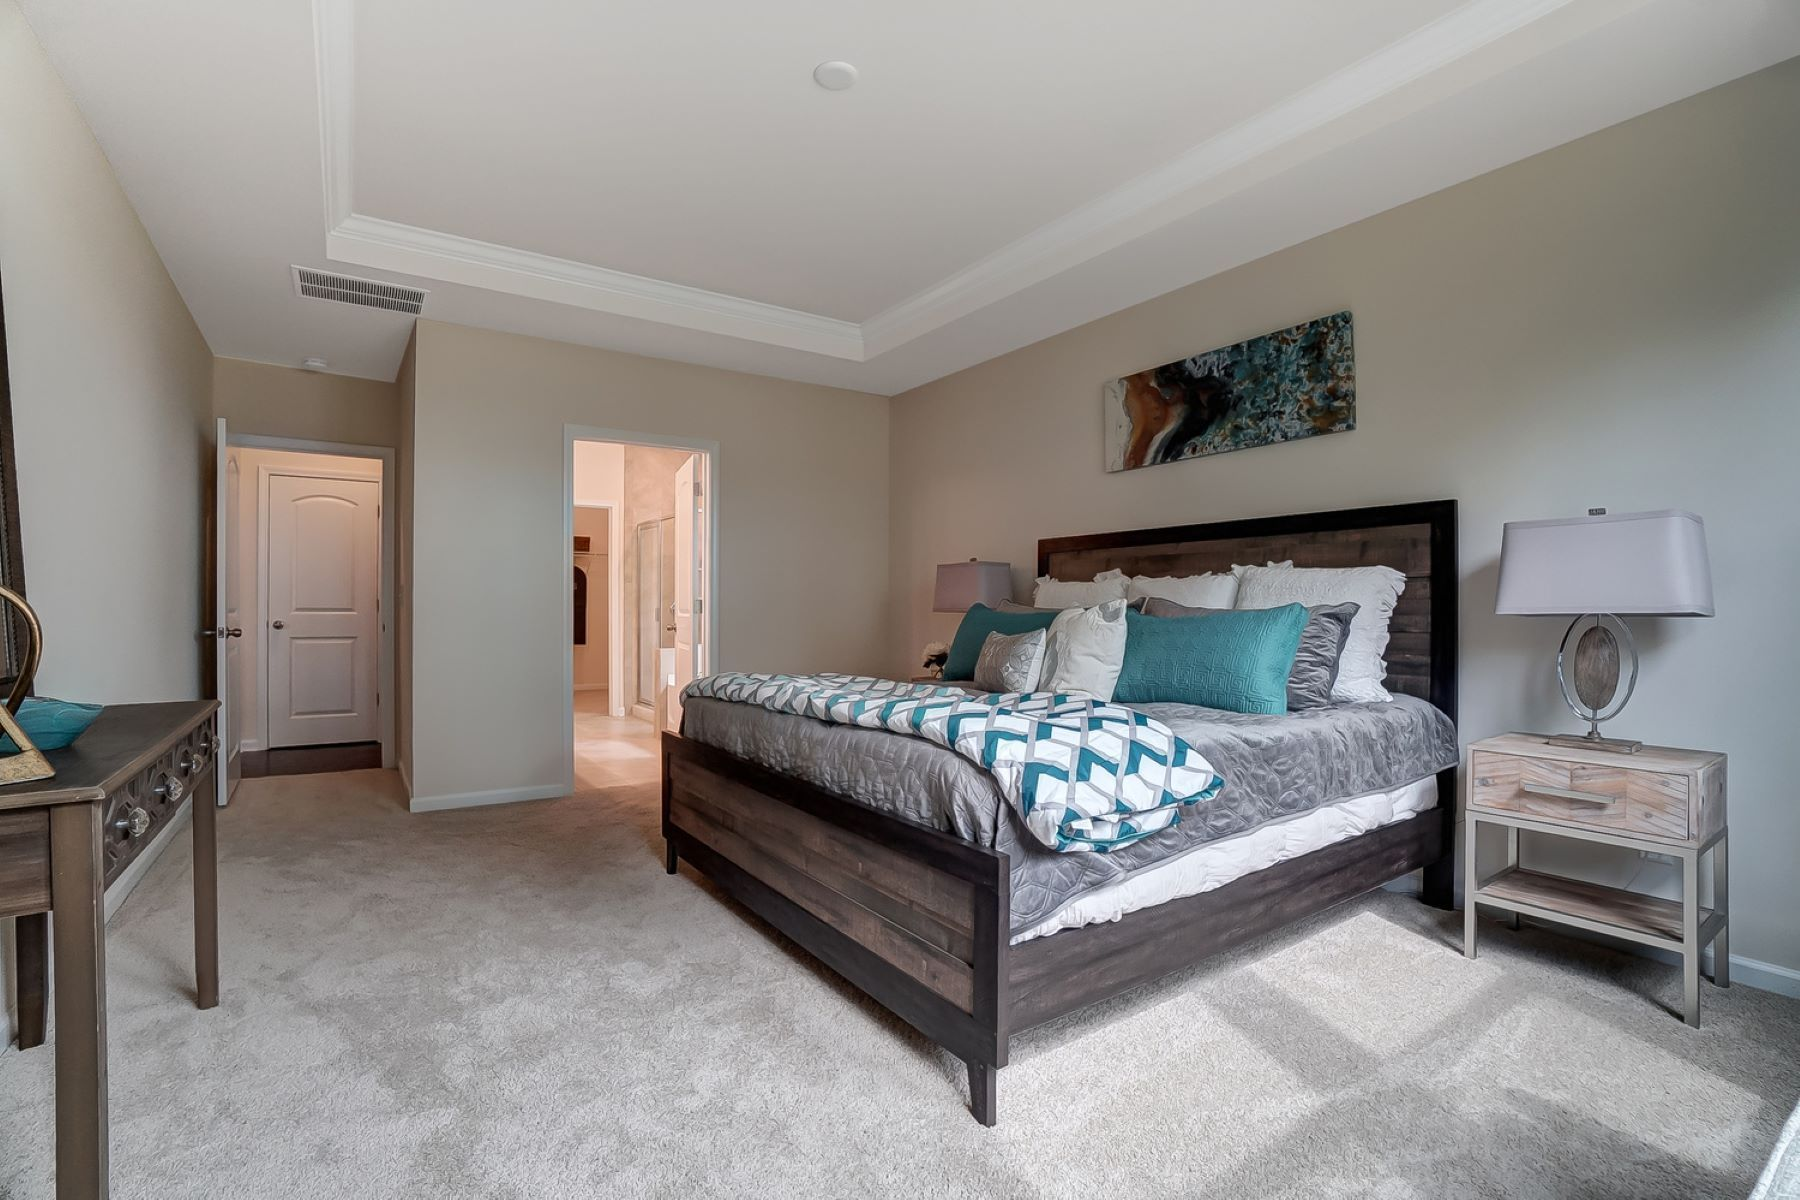 Bedroom featured in the Nolan By Mattamy Homes in Charlotte, NC